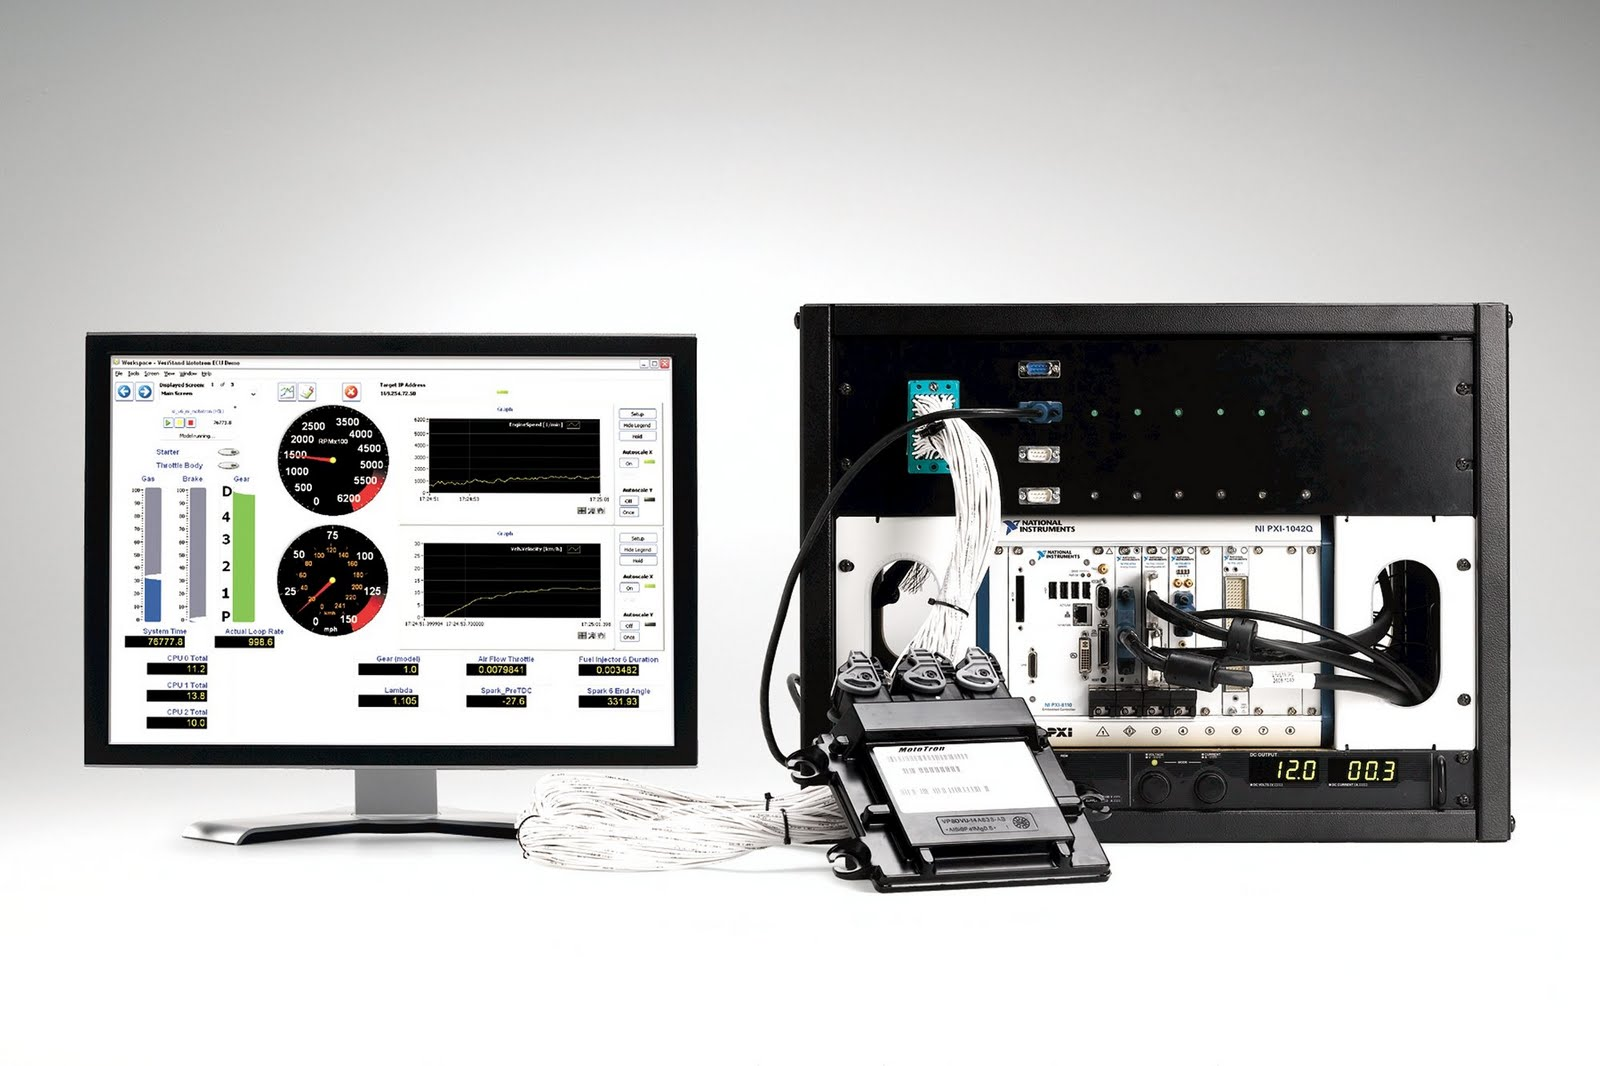 The Embedded Blog November 2009 Robot Rs170 Stereo Speaker With Led Black National Instruments Is Extending Its Hardware In Loop Hil Simulation Platform Which Includes A Range Of Products That Optimise System